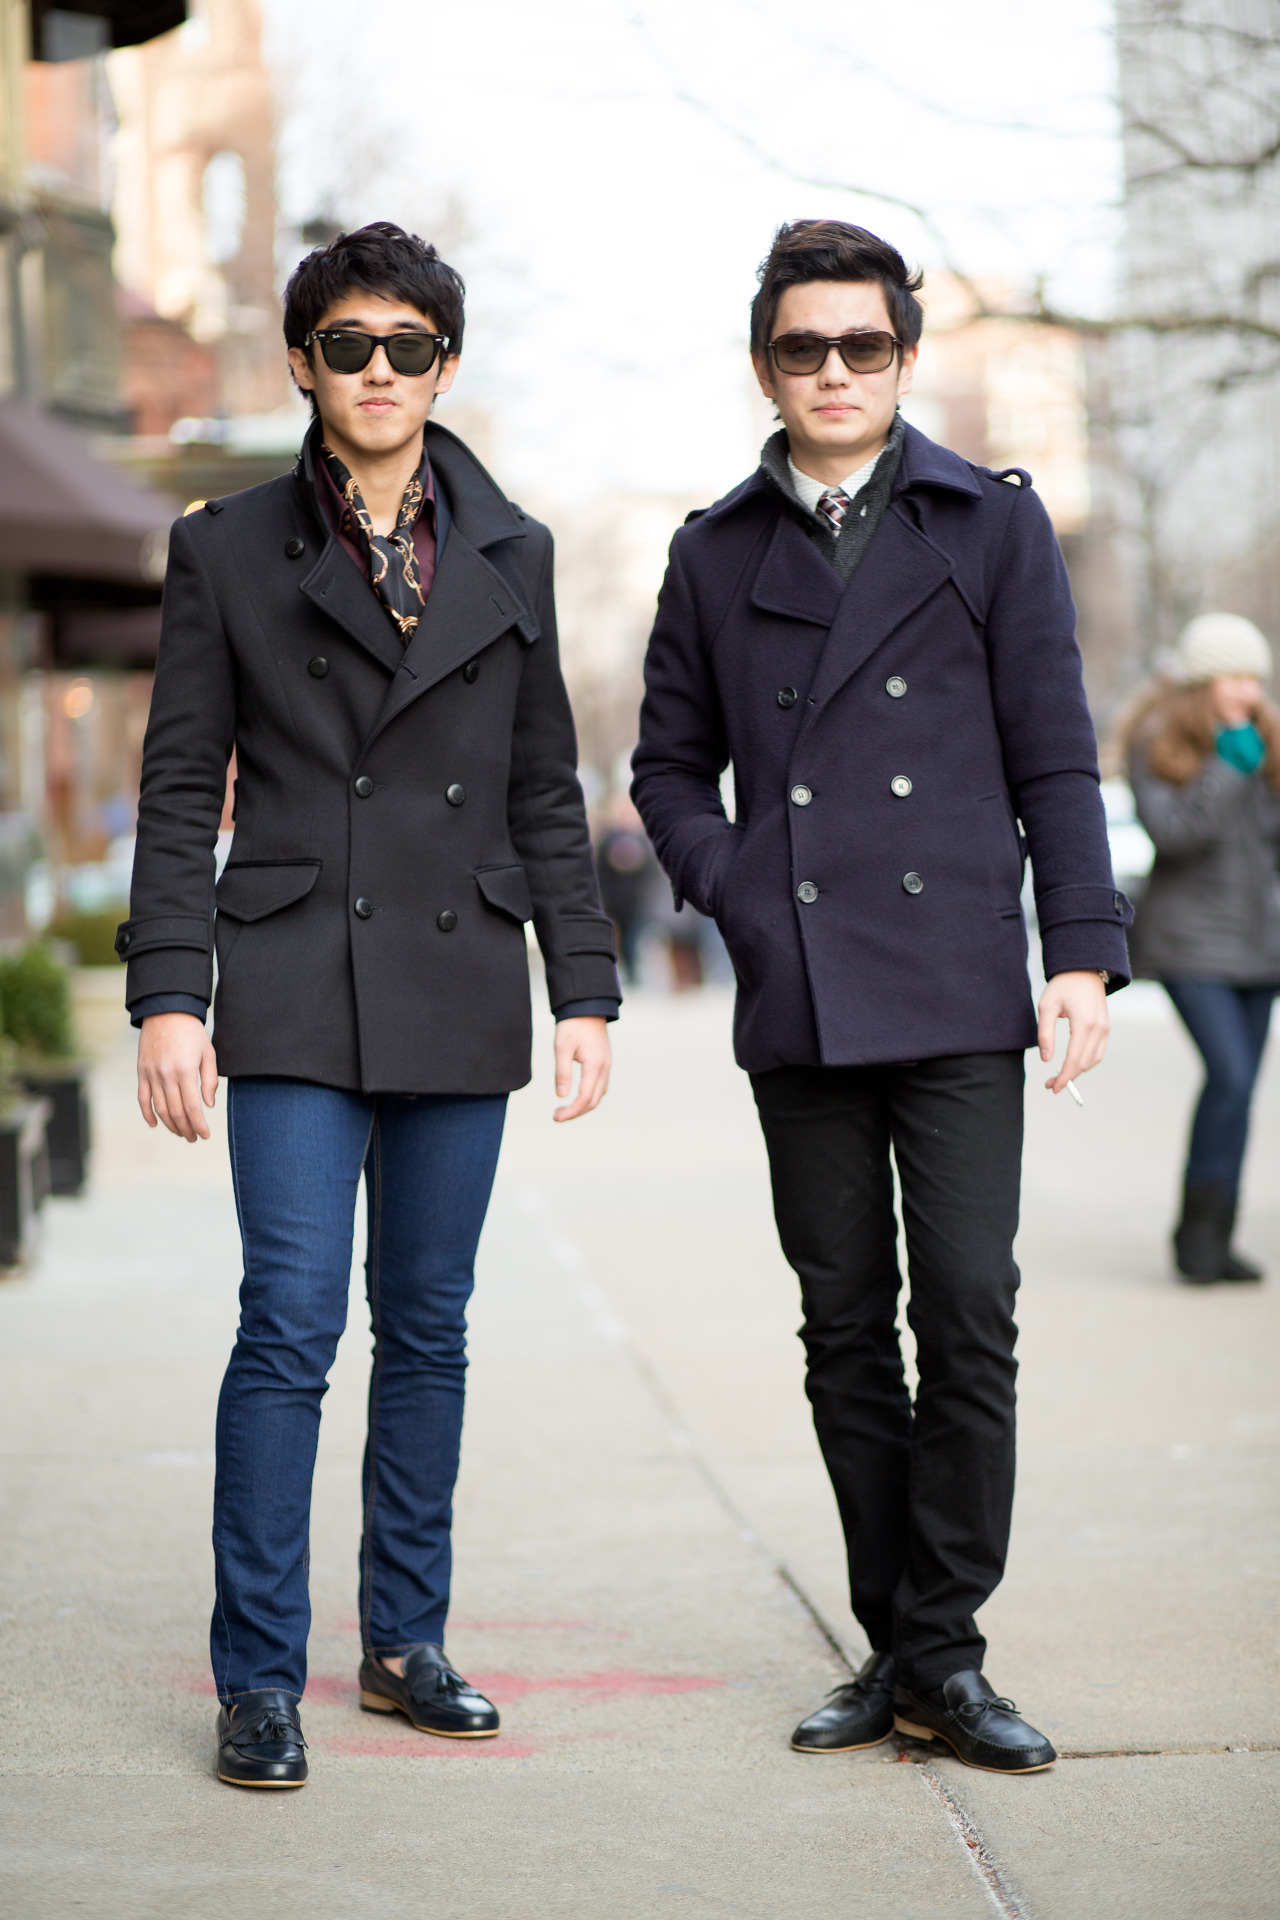 Self Described Style: ModernOccupation: StudentsSpotted at: Newbury St. At a quick glance you would say that these two are dressed very similarly. But upon closer inspection their outfits are perfect mirrors of each other. The black peacoat of the guy on the left is perfectly balanced by the black pants of the guy on the right. And his blue peacoat is perfectly balanced by the other guys blue jeans. It is the yin and yang of peacoat style!